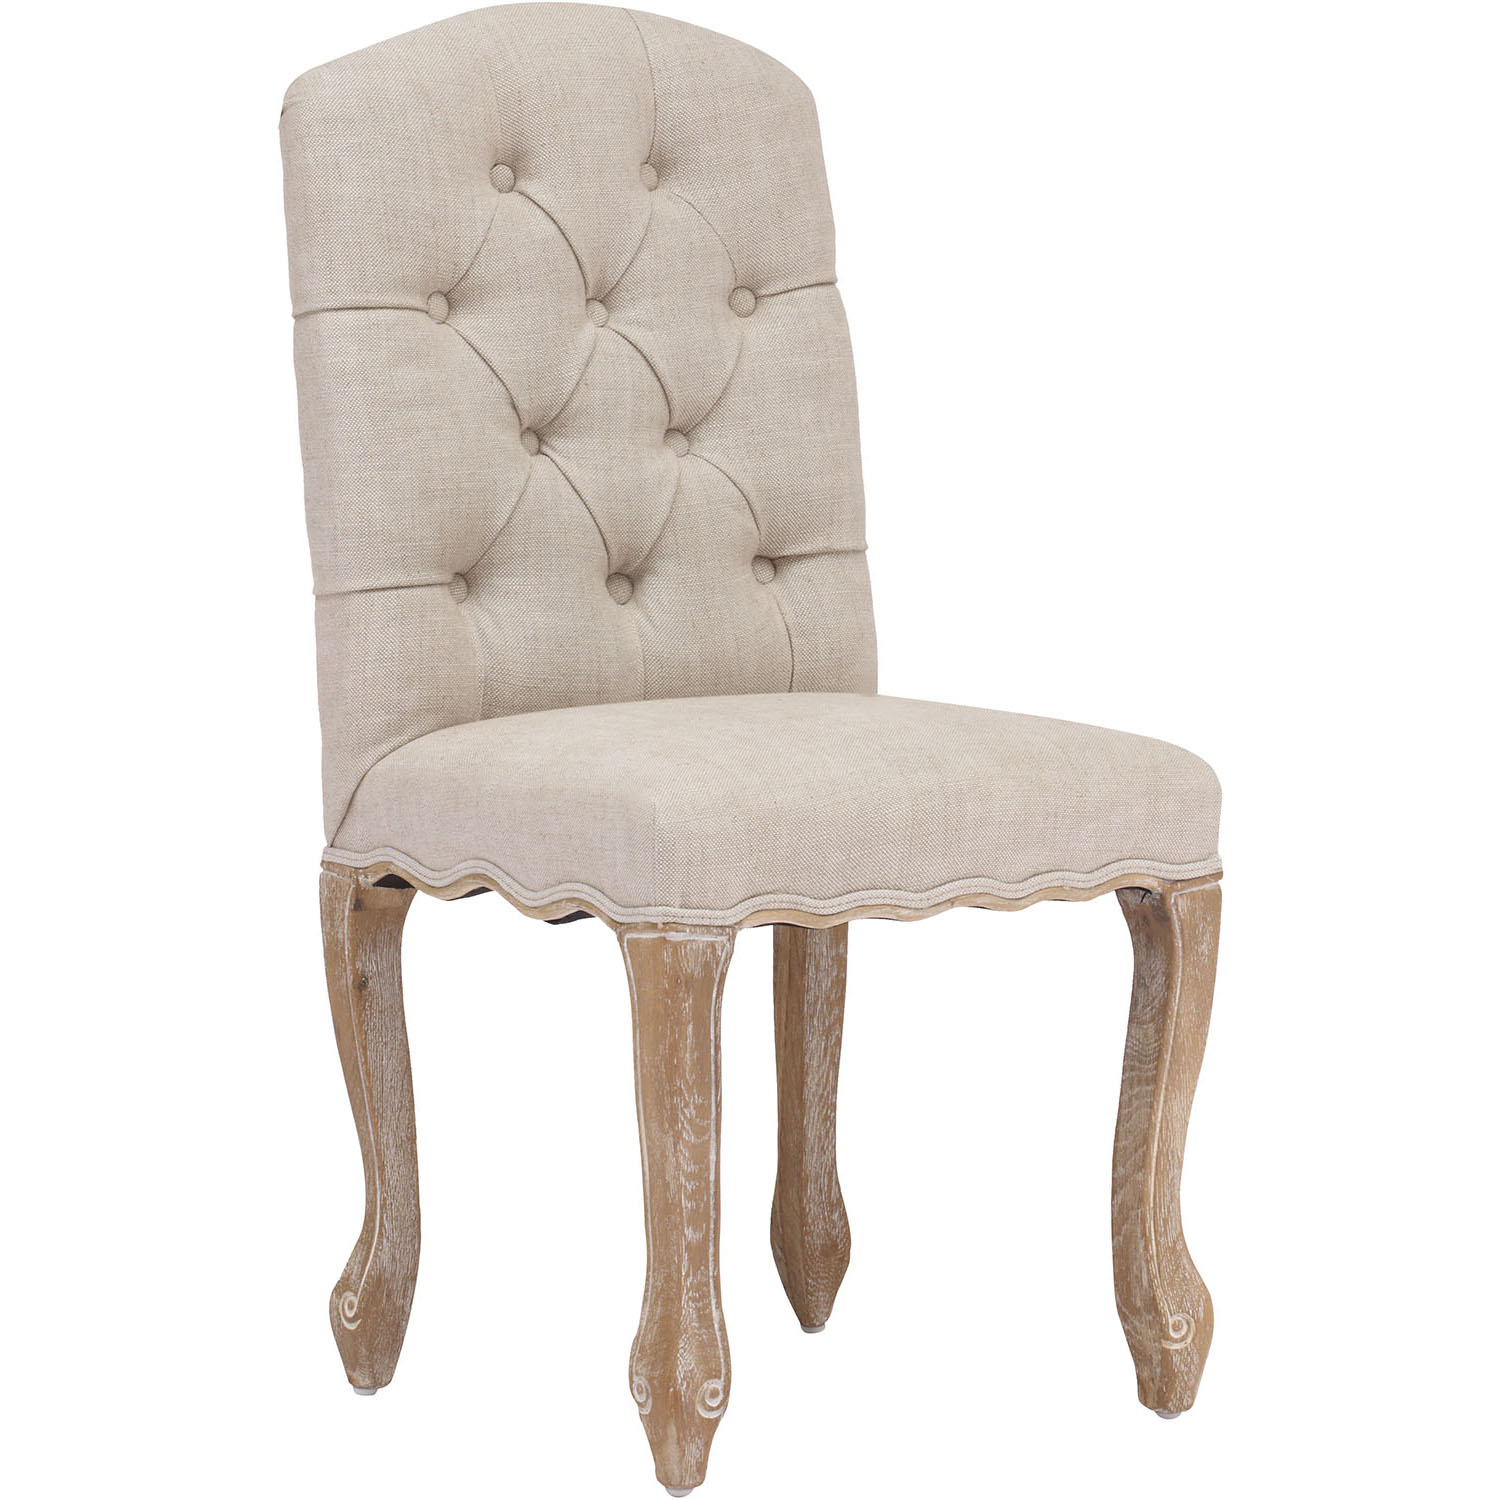 Superb-quality Era Noe Valley Dining Chairs  Product Photo